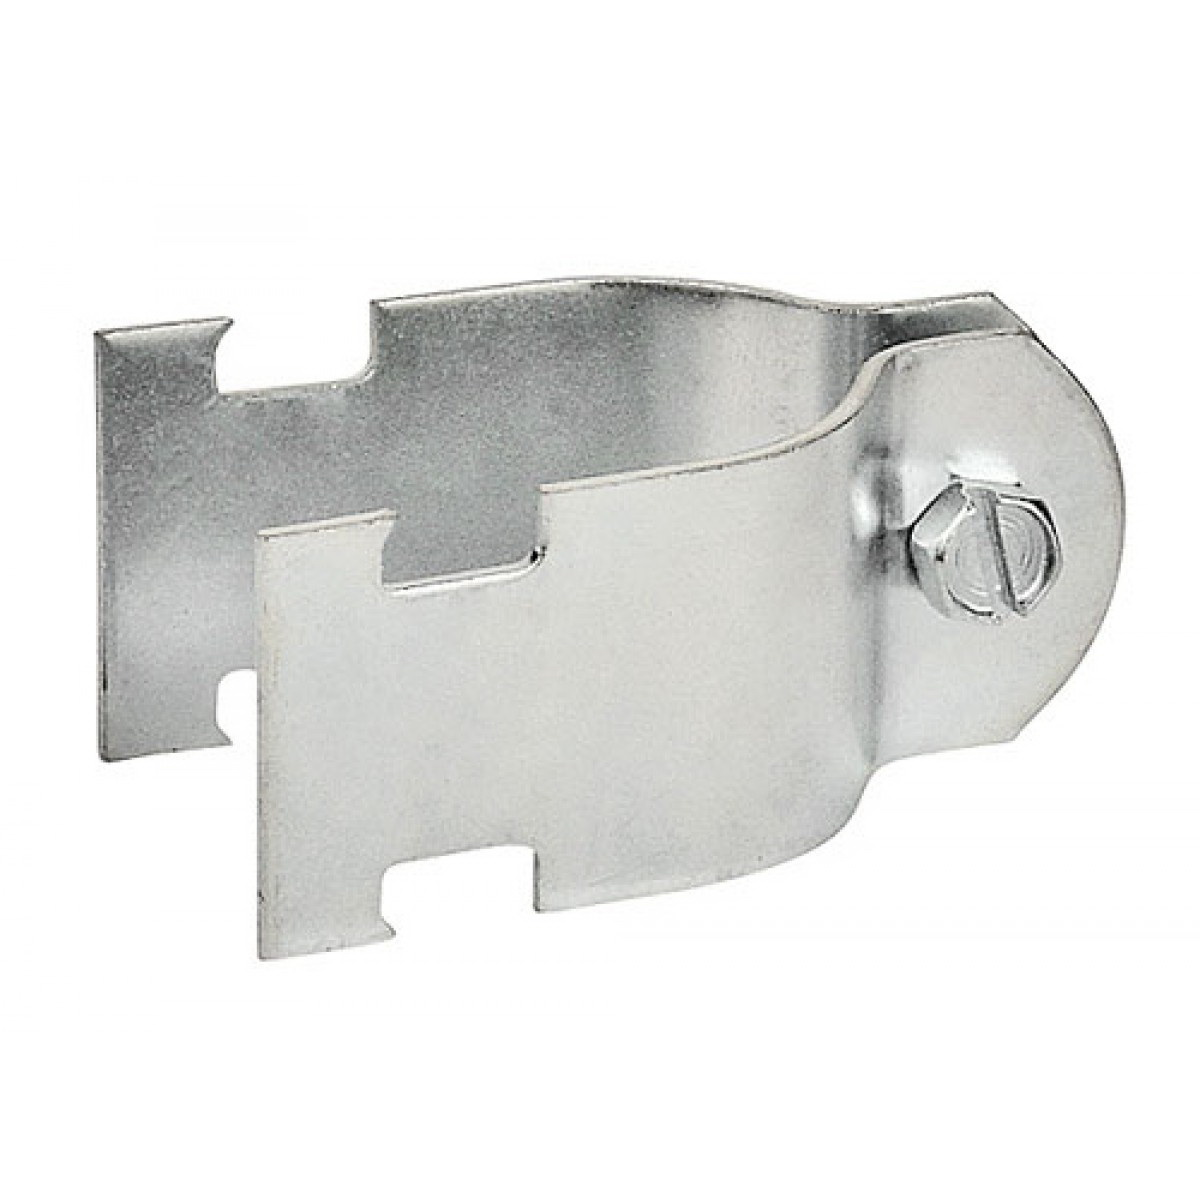 Zinc Coated Conduit Clamp, 1/2 in OD